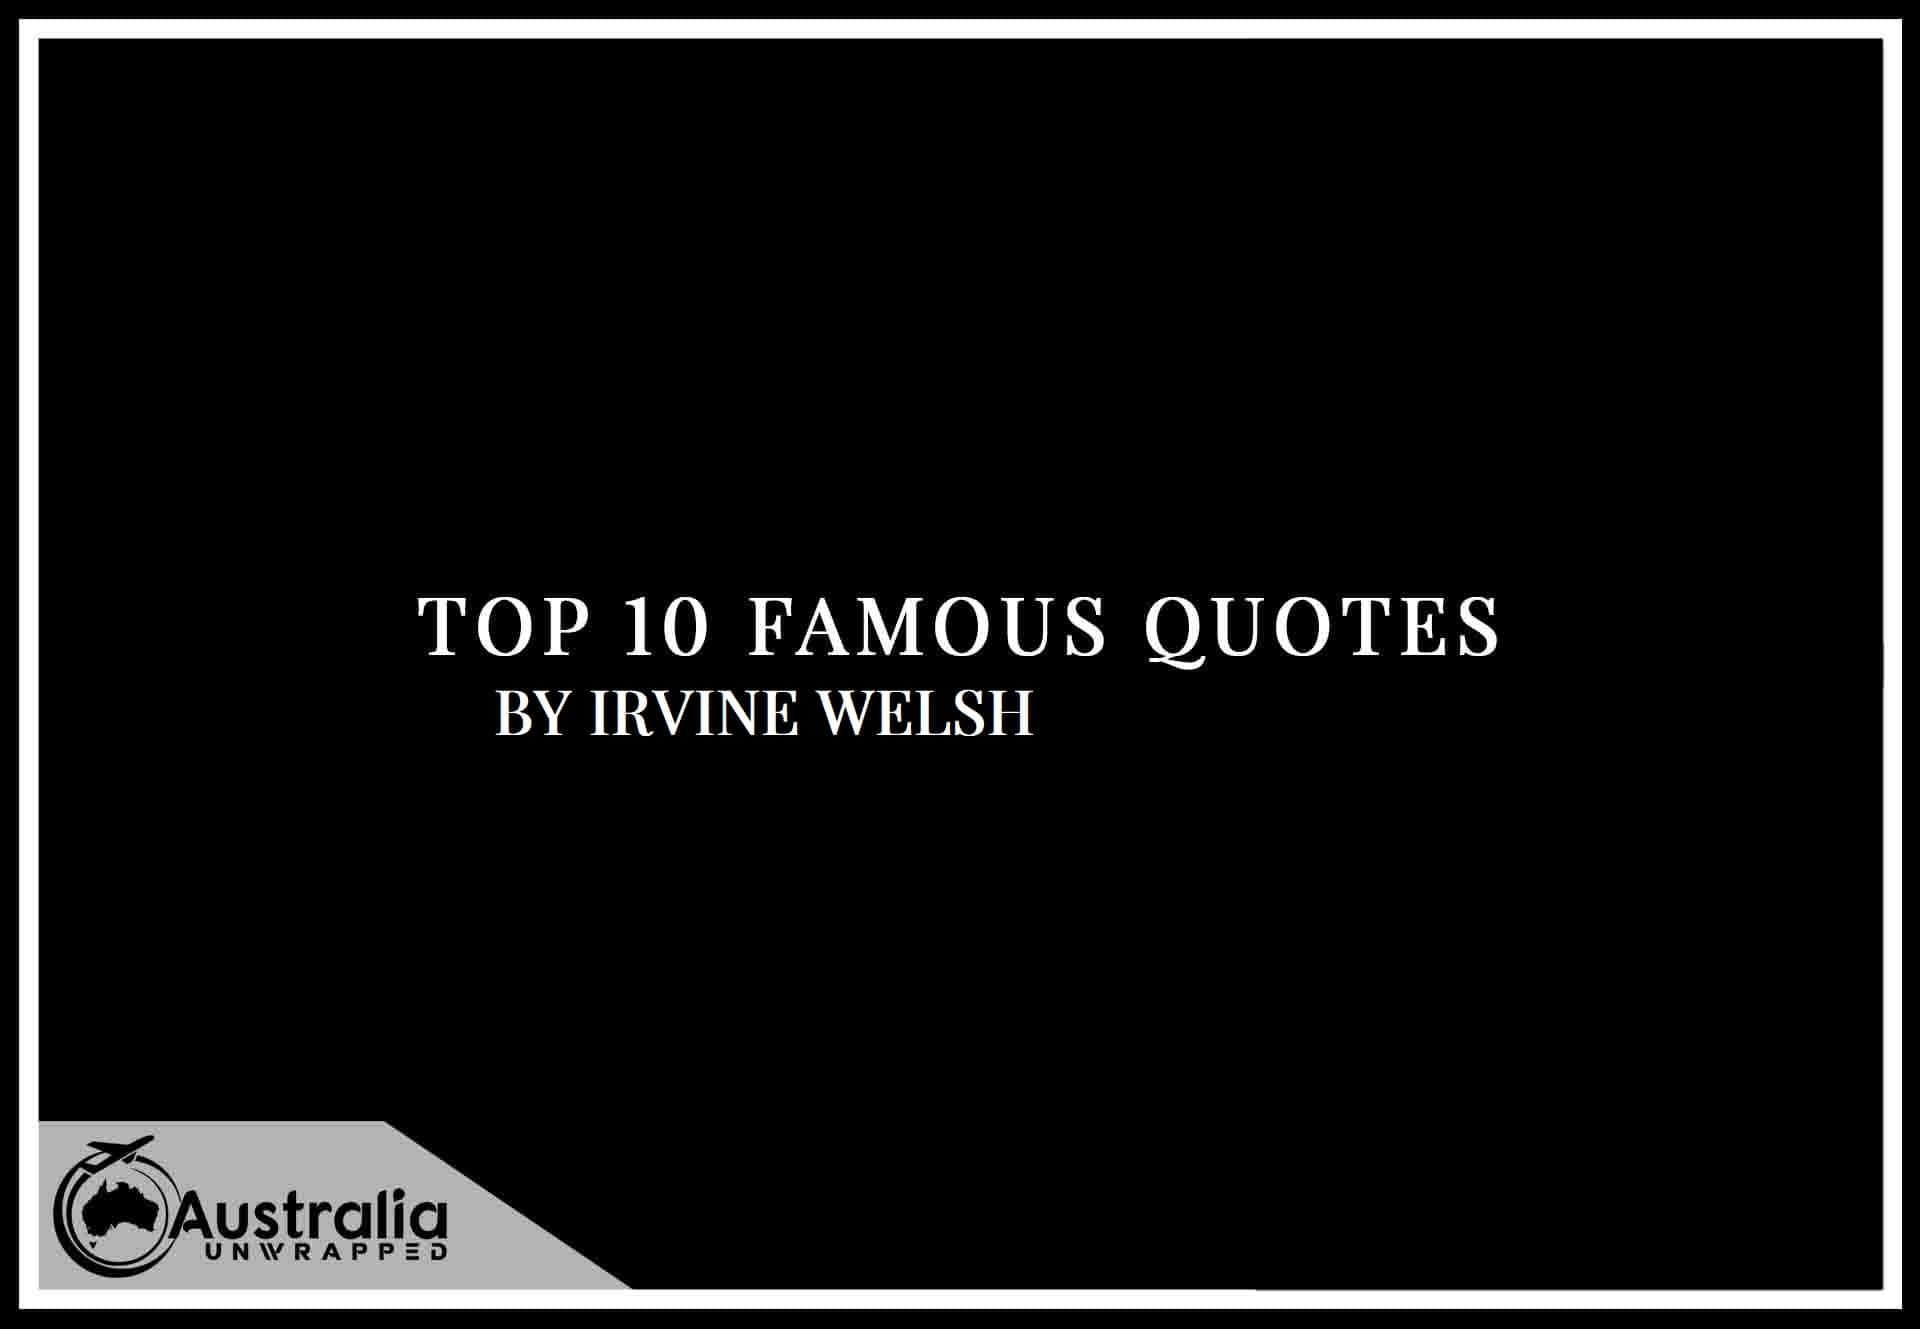 Top 10 Famous Quotes by Author Irvine Welsh